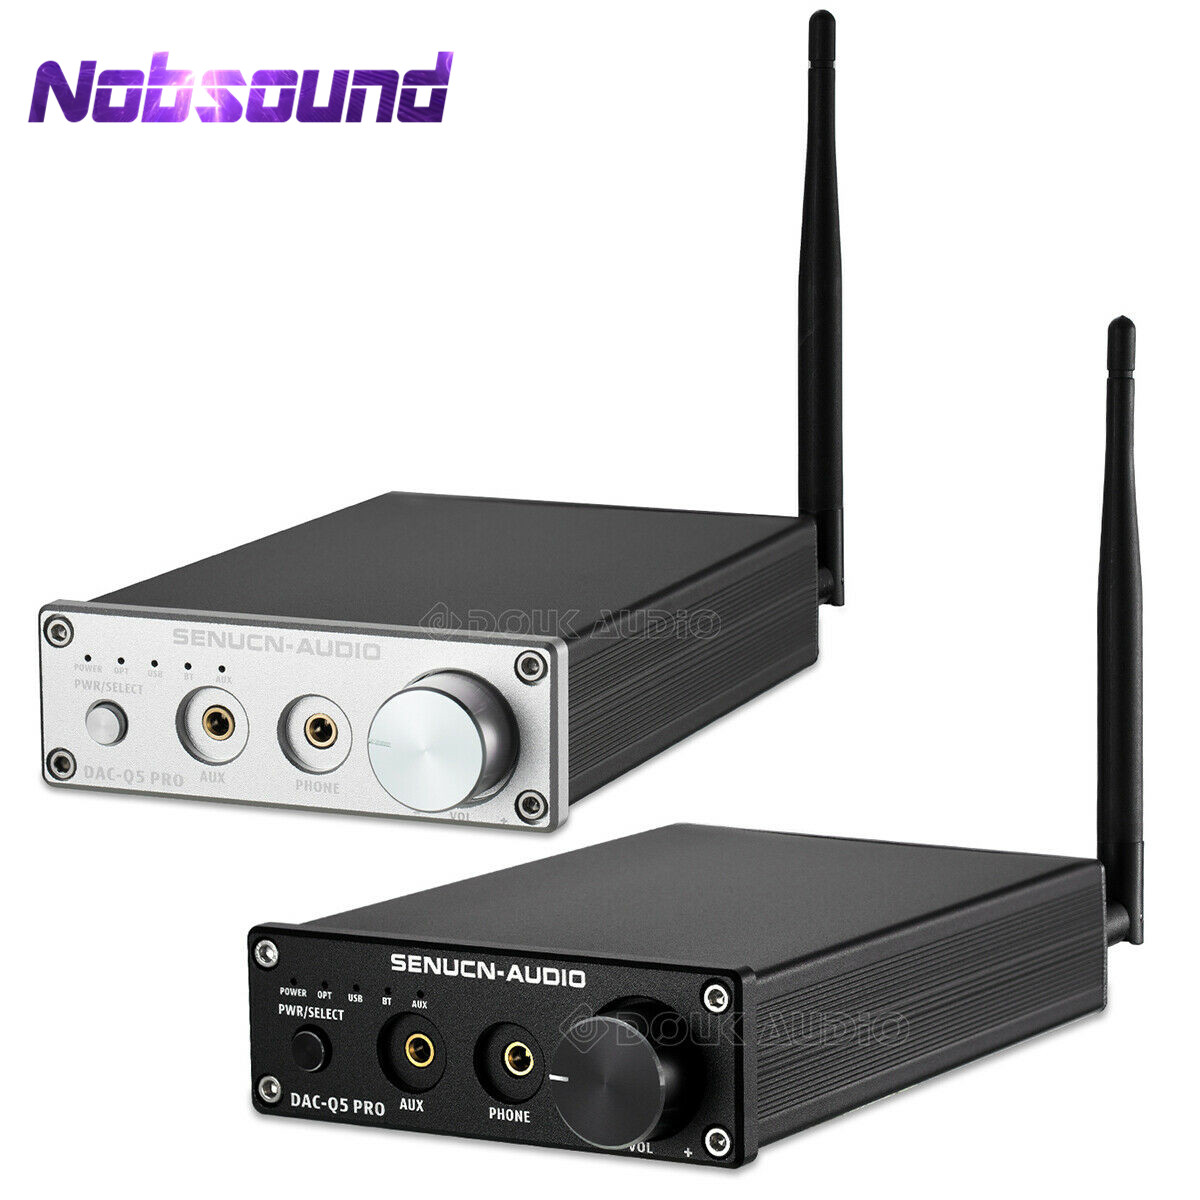 Mini Bluetooth 5.0 USB DAC Audio Decoder Stereo HiFi Headphone Amplifier Optical AUX Black/SilverMini Bluetooth 5.0 USB DAC Audio Decoder Stereo HiFi Headphone Amplifier Optical AUX Black/Silver